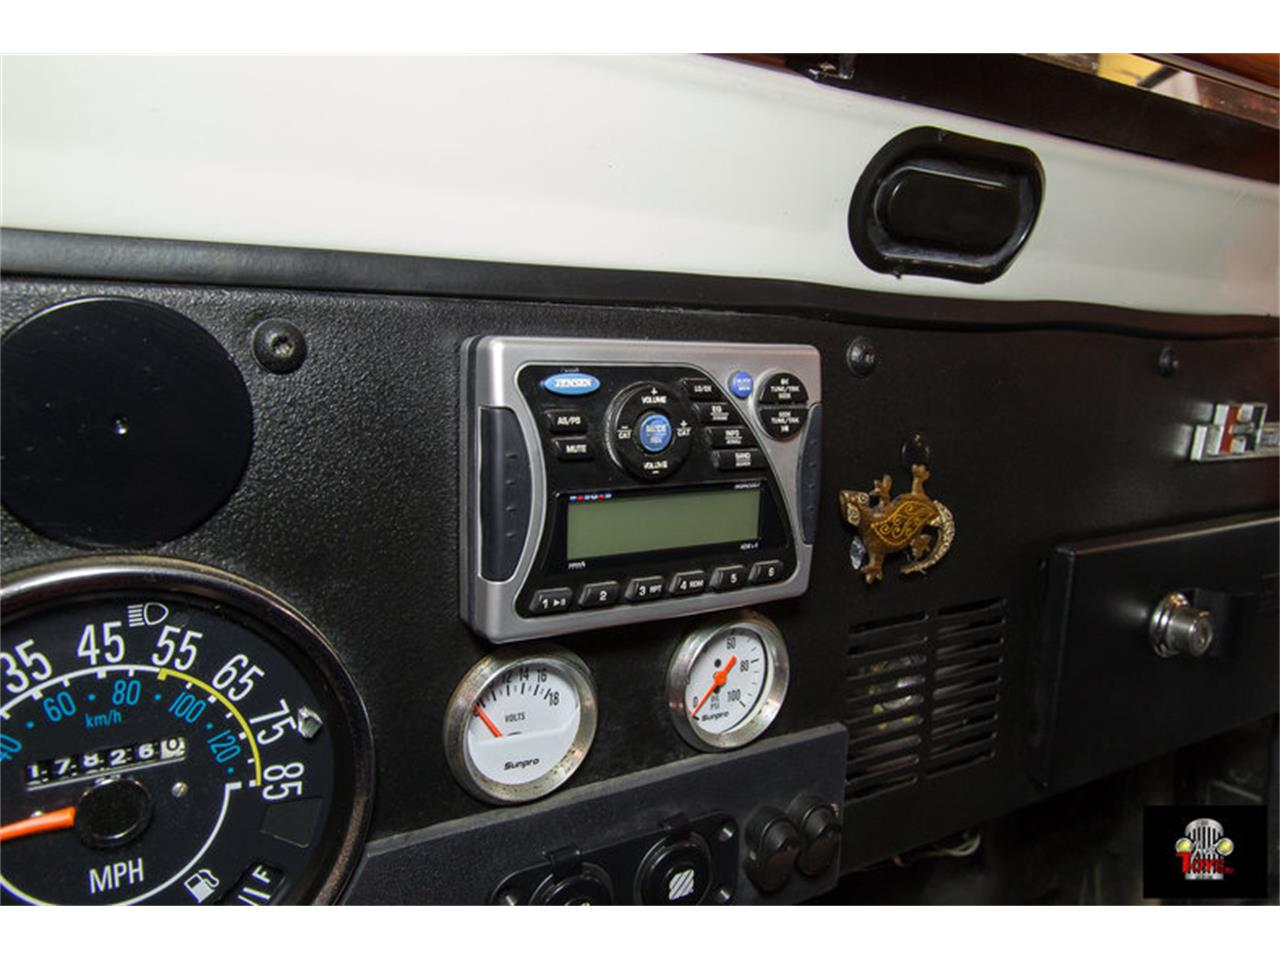 Large Picture of 1983 Wrangler located in Orlando Florida - $11,995.00 - LHC9